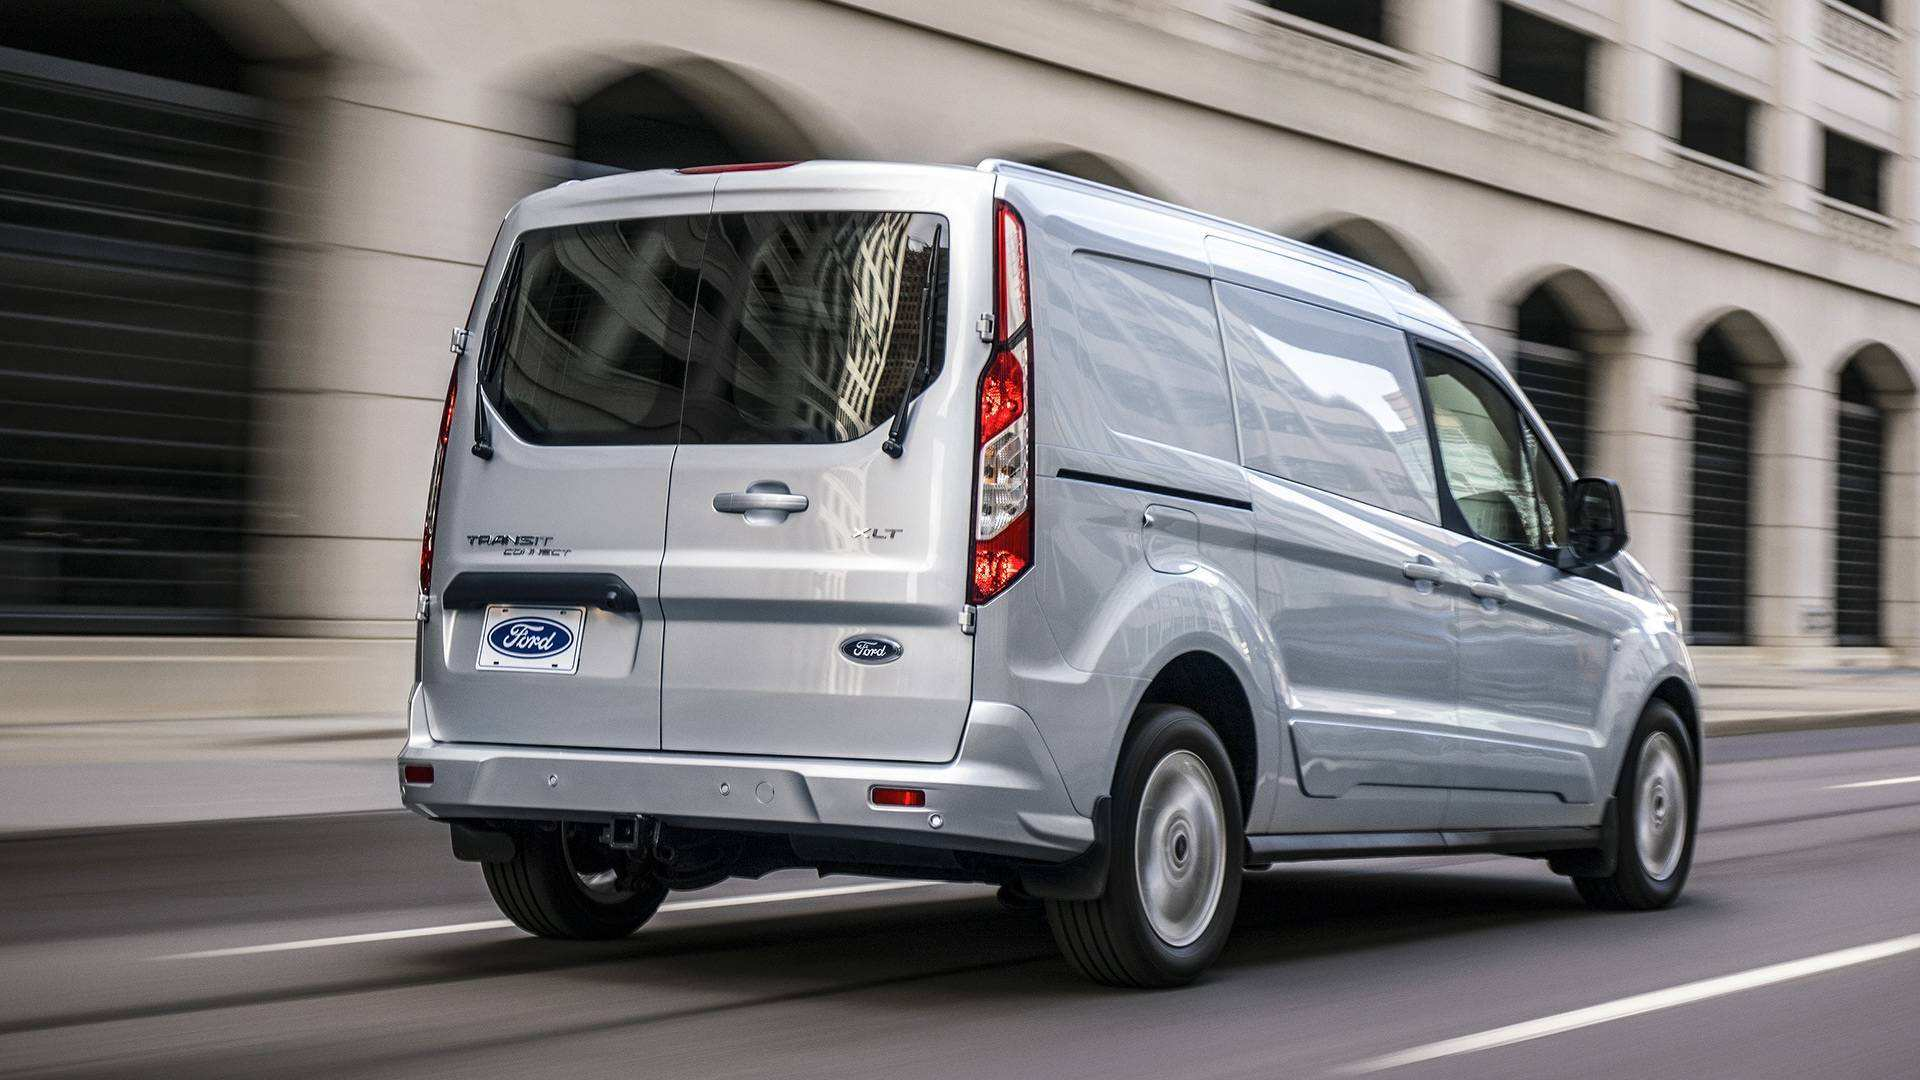 19 Concept of Ford Transit 2019 Changes Redesign Price And Review Redesign and Concept by Ford Transit 2019 Changes Redesign Price And Review